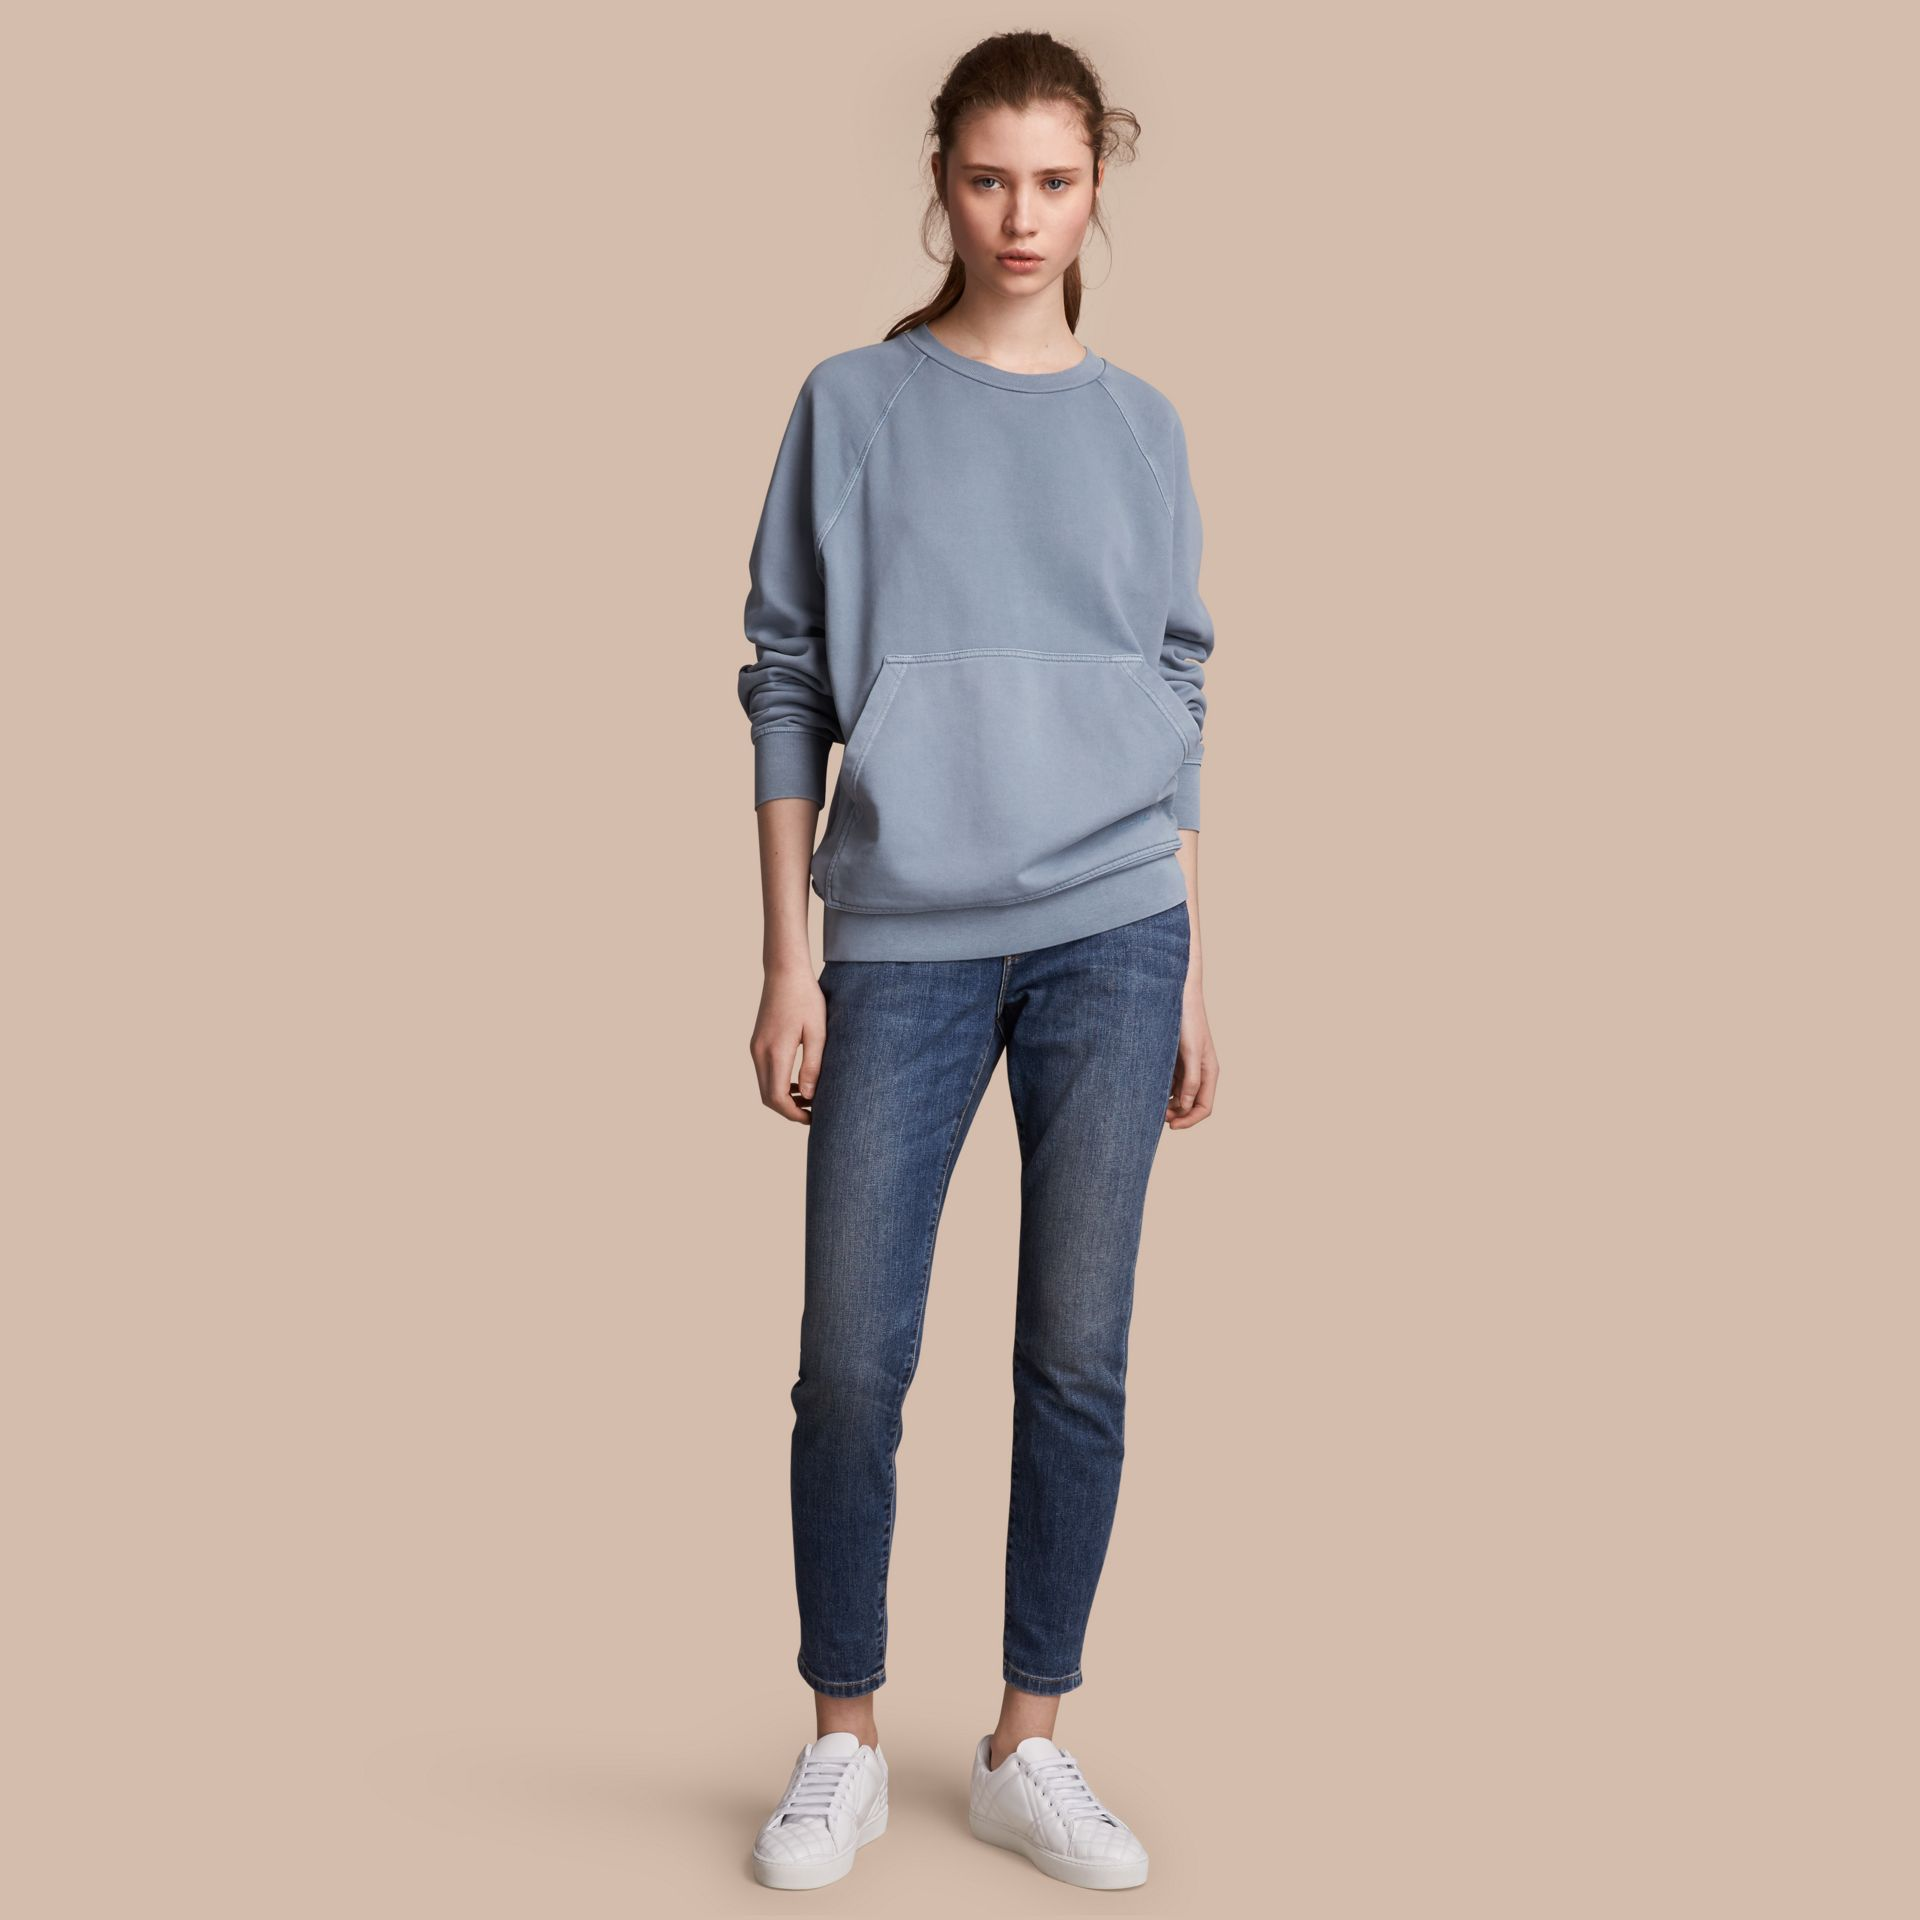 Unisex Pigment-dyed Cotton Oversize Sweatshirt in Dusty Blue - Women | Burberry - gallery image 0